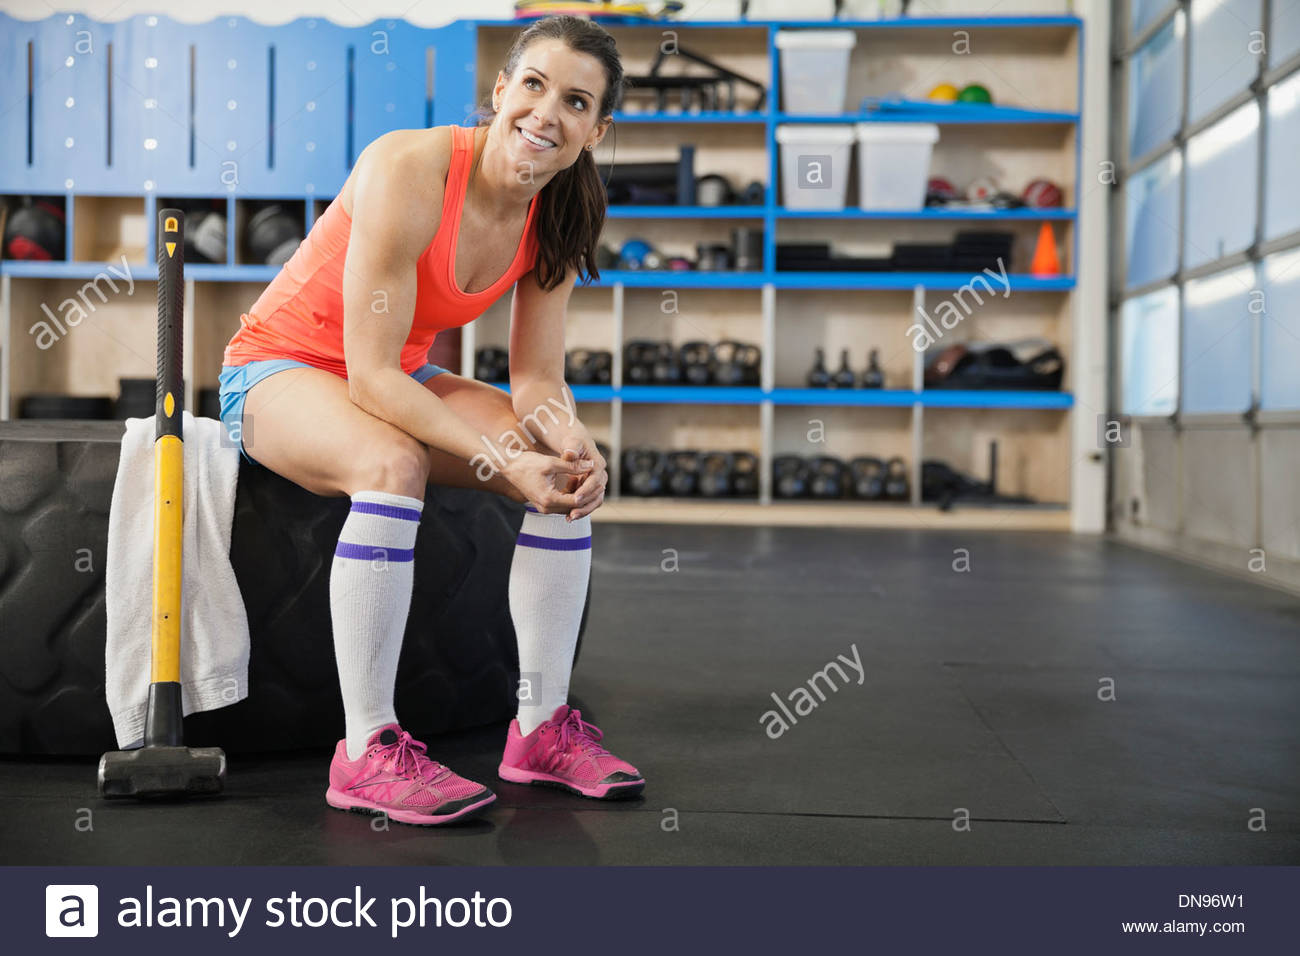 Woman sitting on tire in Crossfit gym - Stock Image